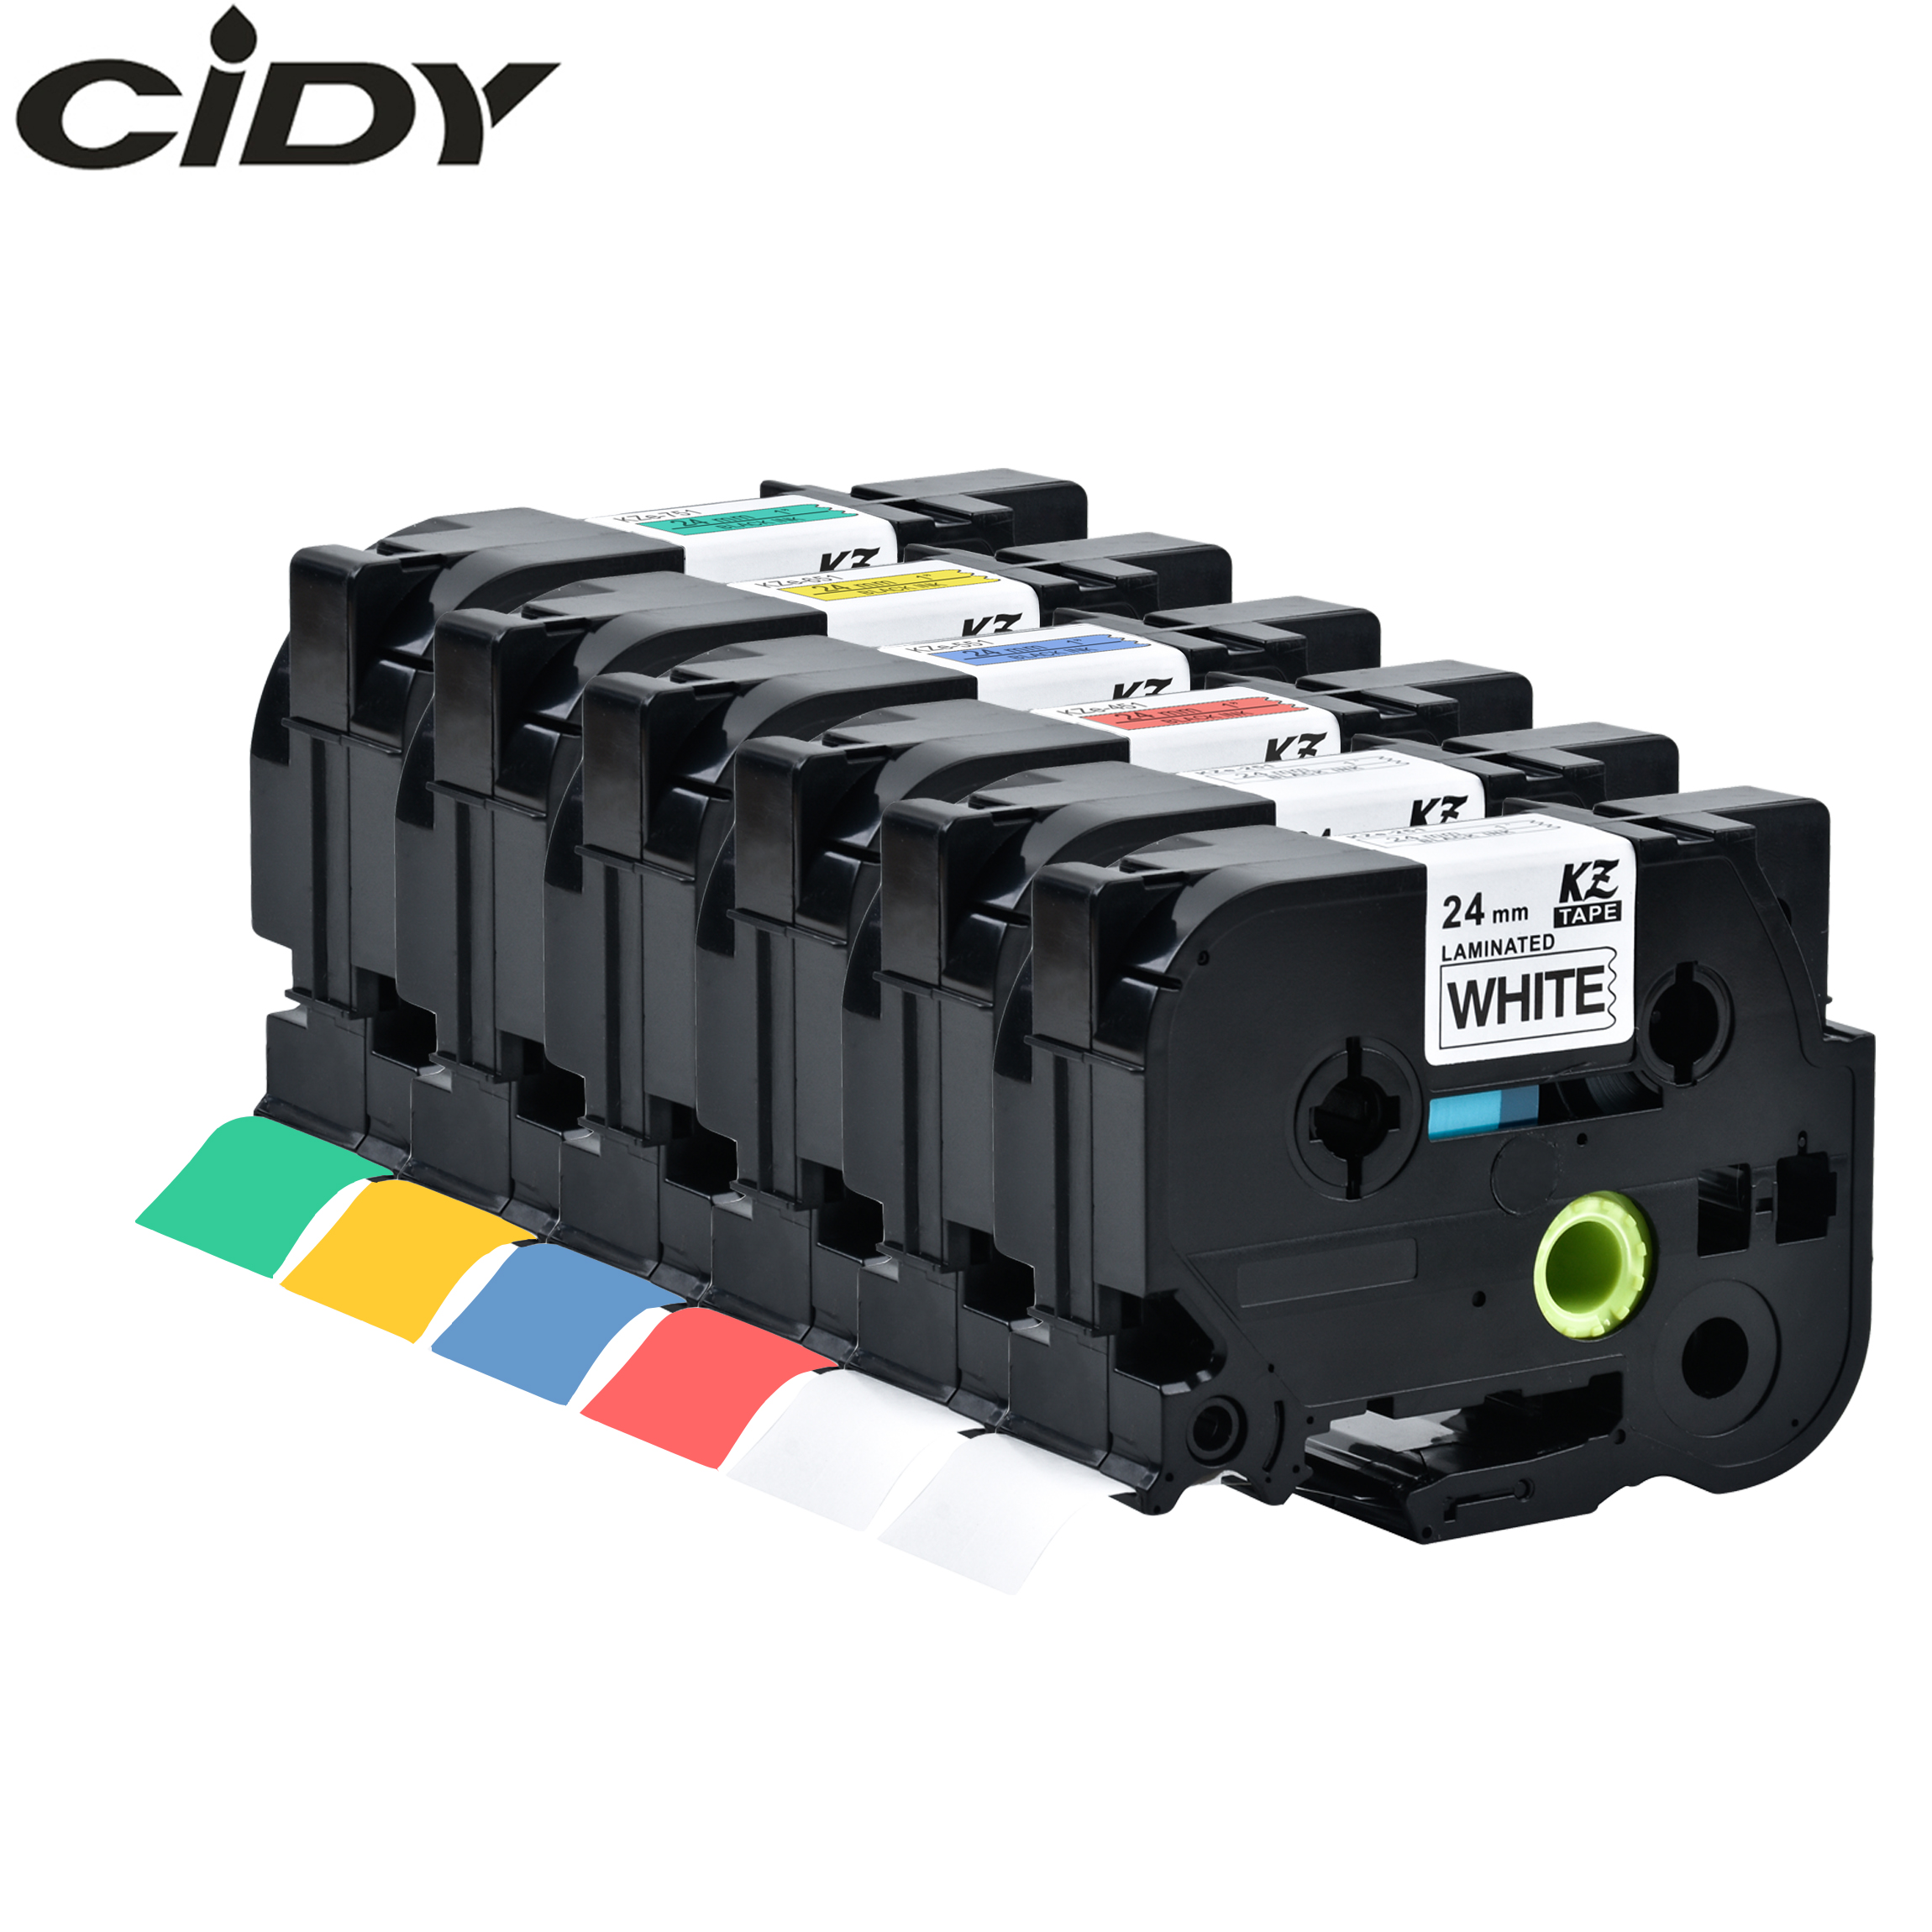 CIDY Multicolor Compatible Laminated Tze 251 Tze251 24mm Black On White Tape Tze-251 Tz-251 For Brother P-touch Printer Tze-151